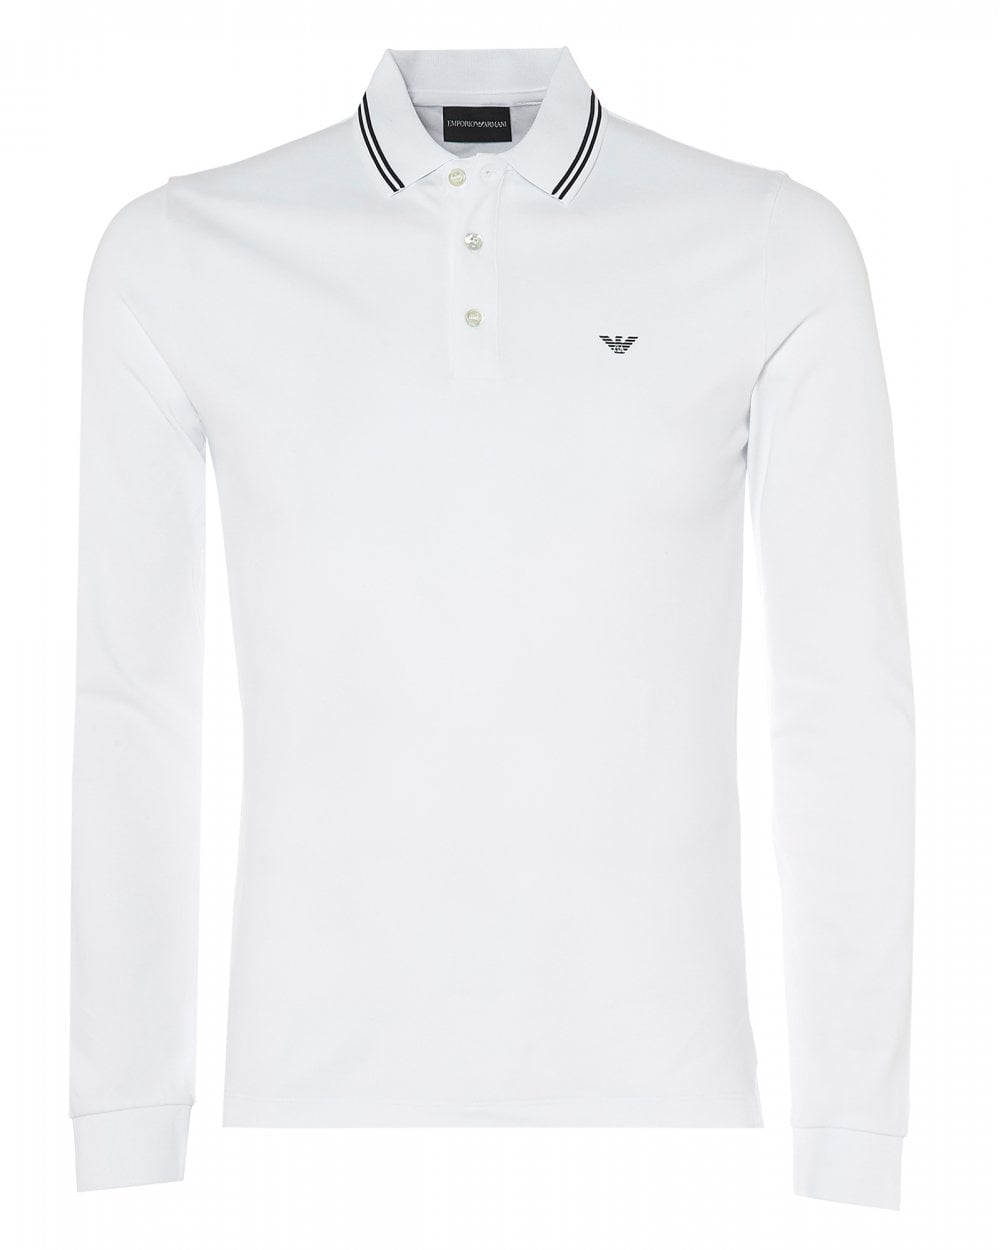 2d1c24fa Emporio Armani Mens Long Sleeve Polo Shirt, White Slim Fit Polo Shirt